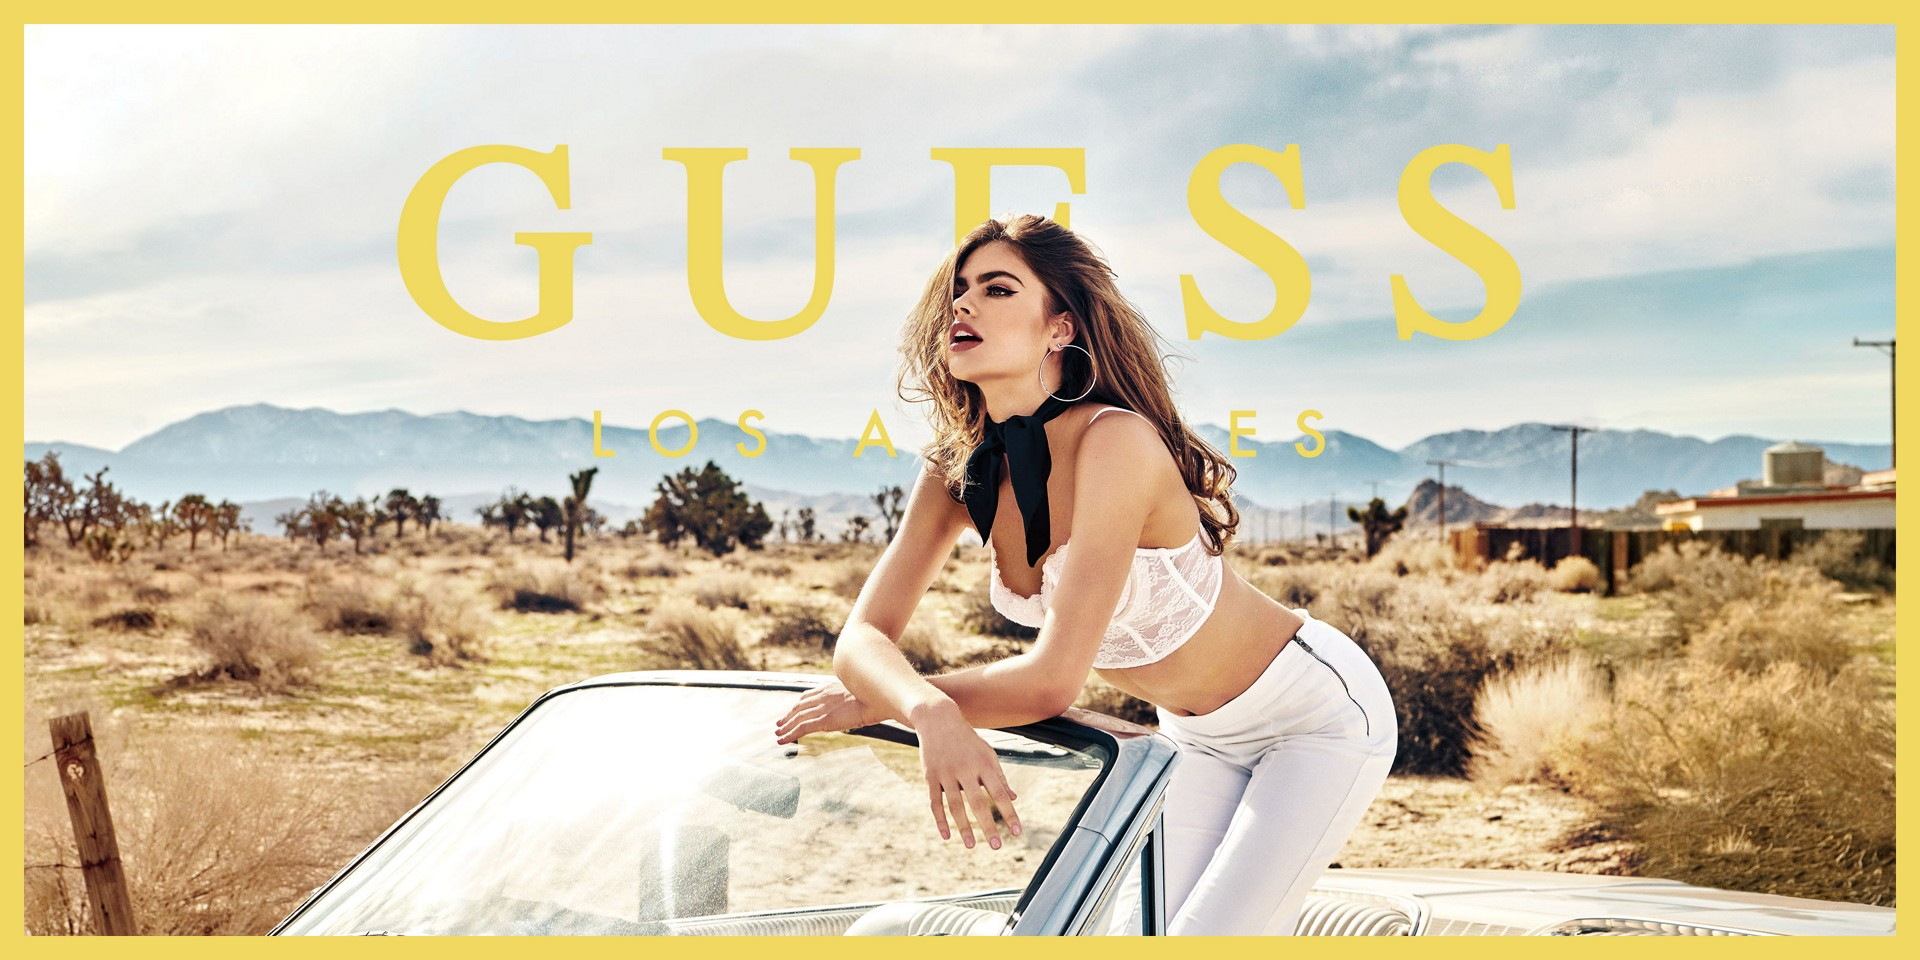 GUESS Summer Campaign